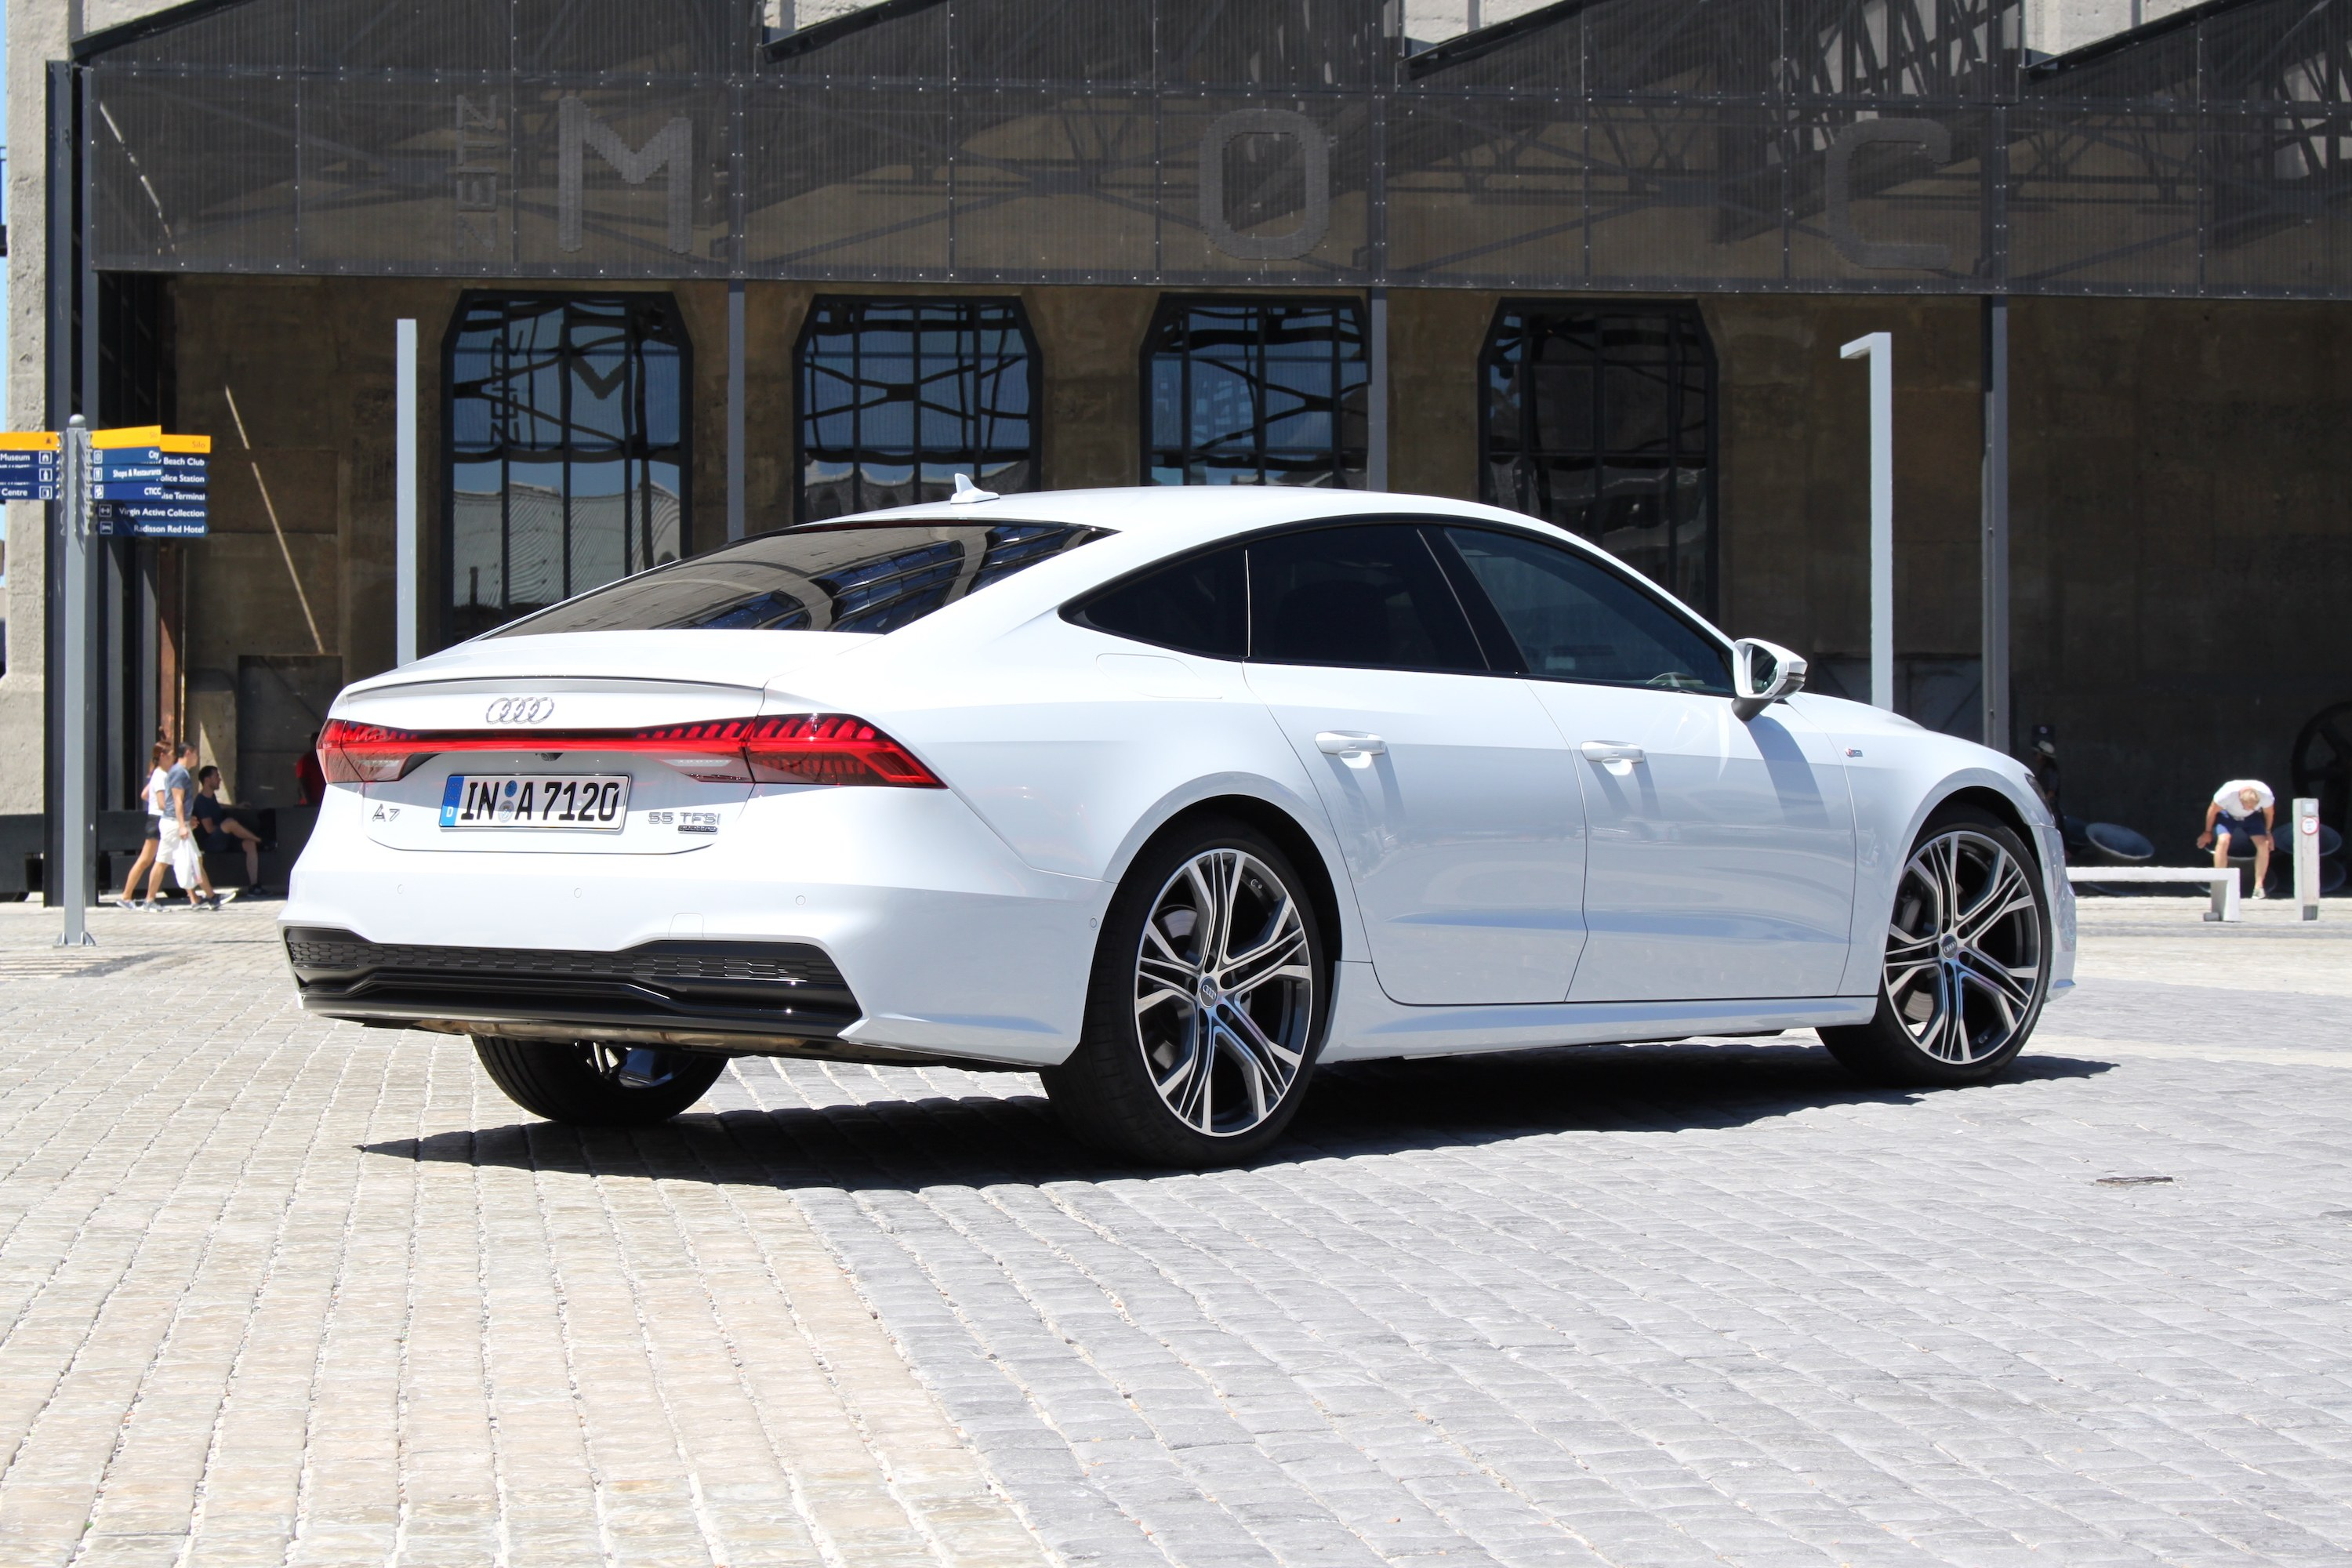 2019 Audi A7 Review and First Drive - Fourtitude.com